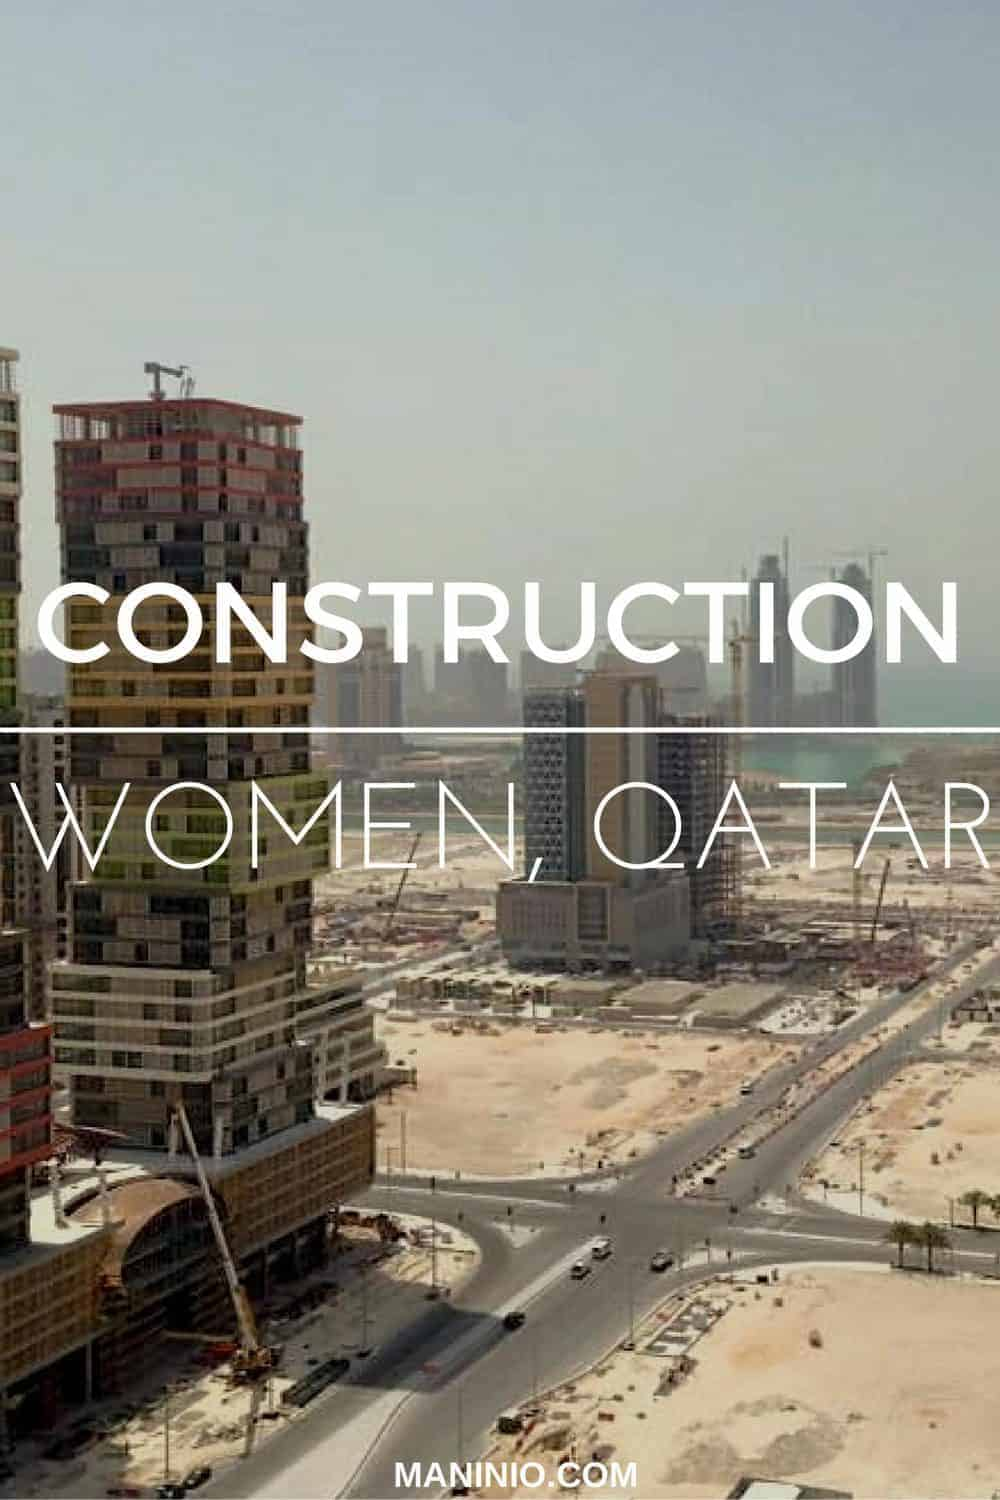 women - construction - qatar - engineering maninio.com